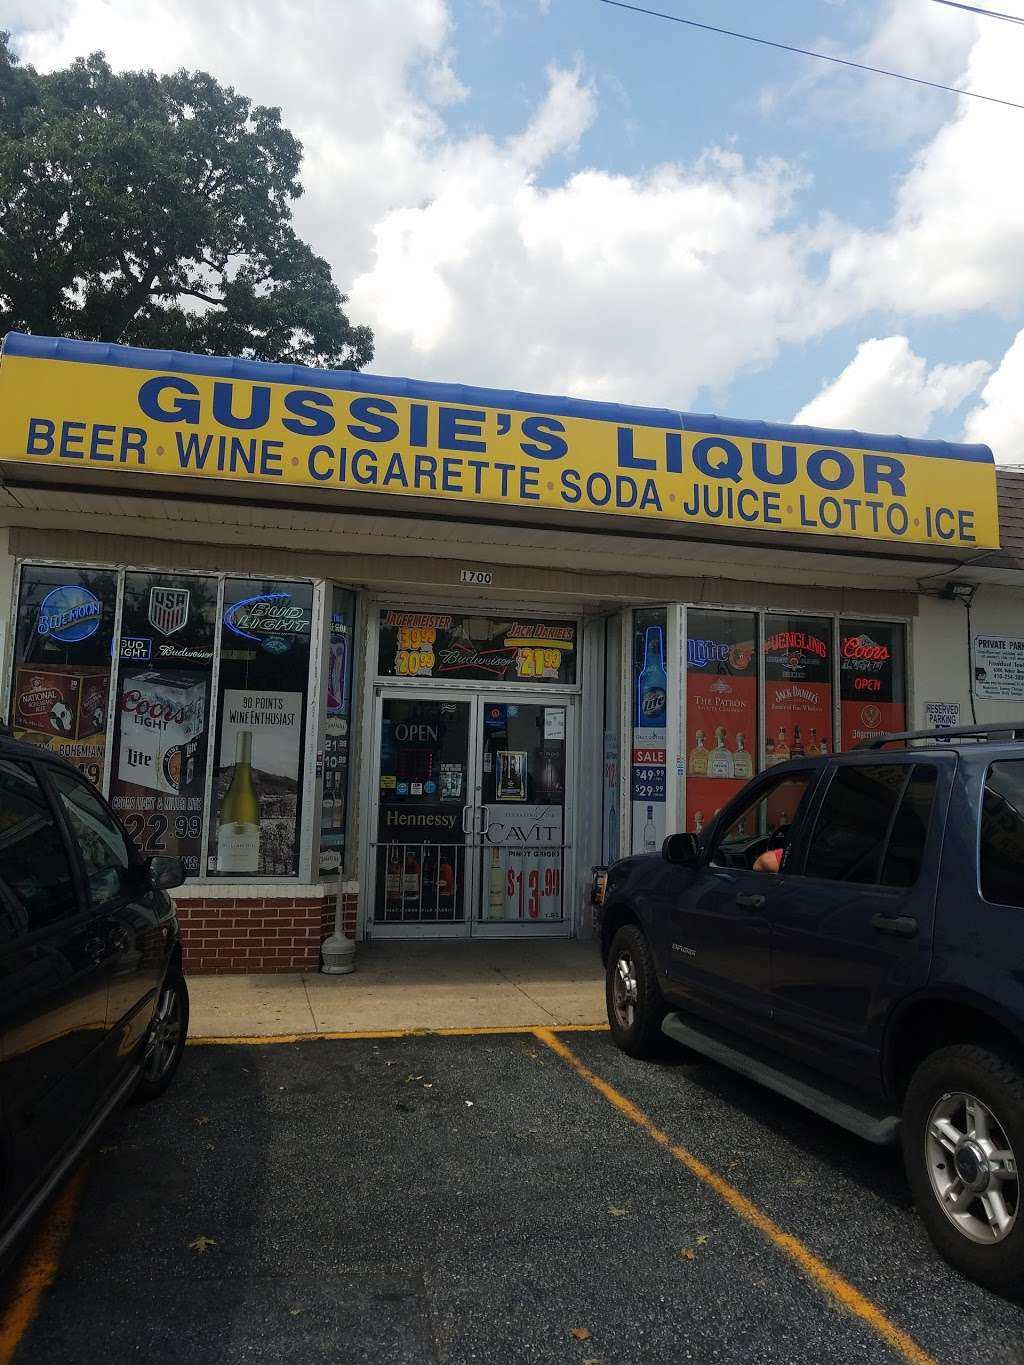 Gussies Liquor - store  | Photo 2 of 3 | Address: 1700 Old Eastern Ave, Essex, MD 21221, USA | Phone: (410) 687-1148